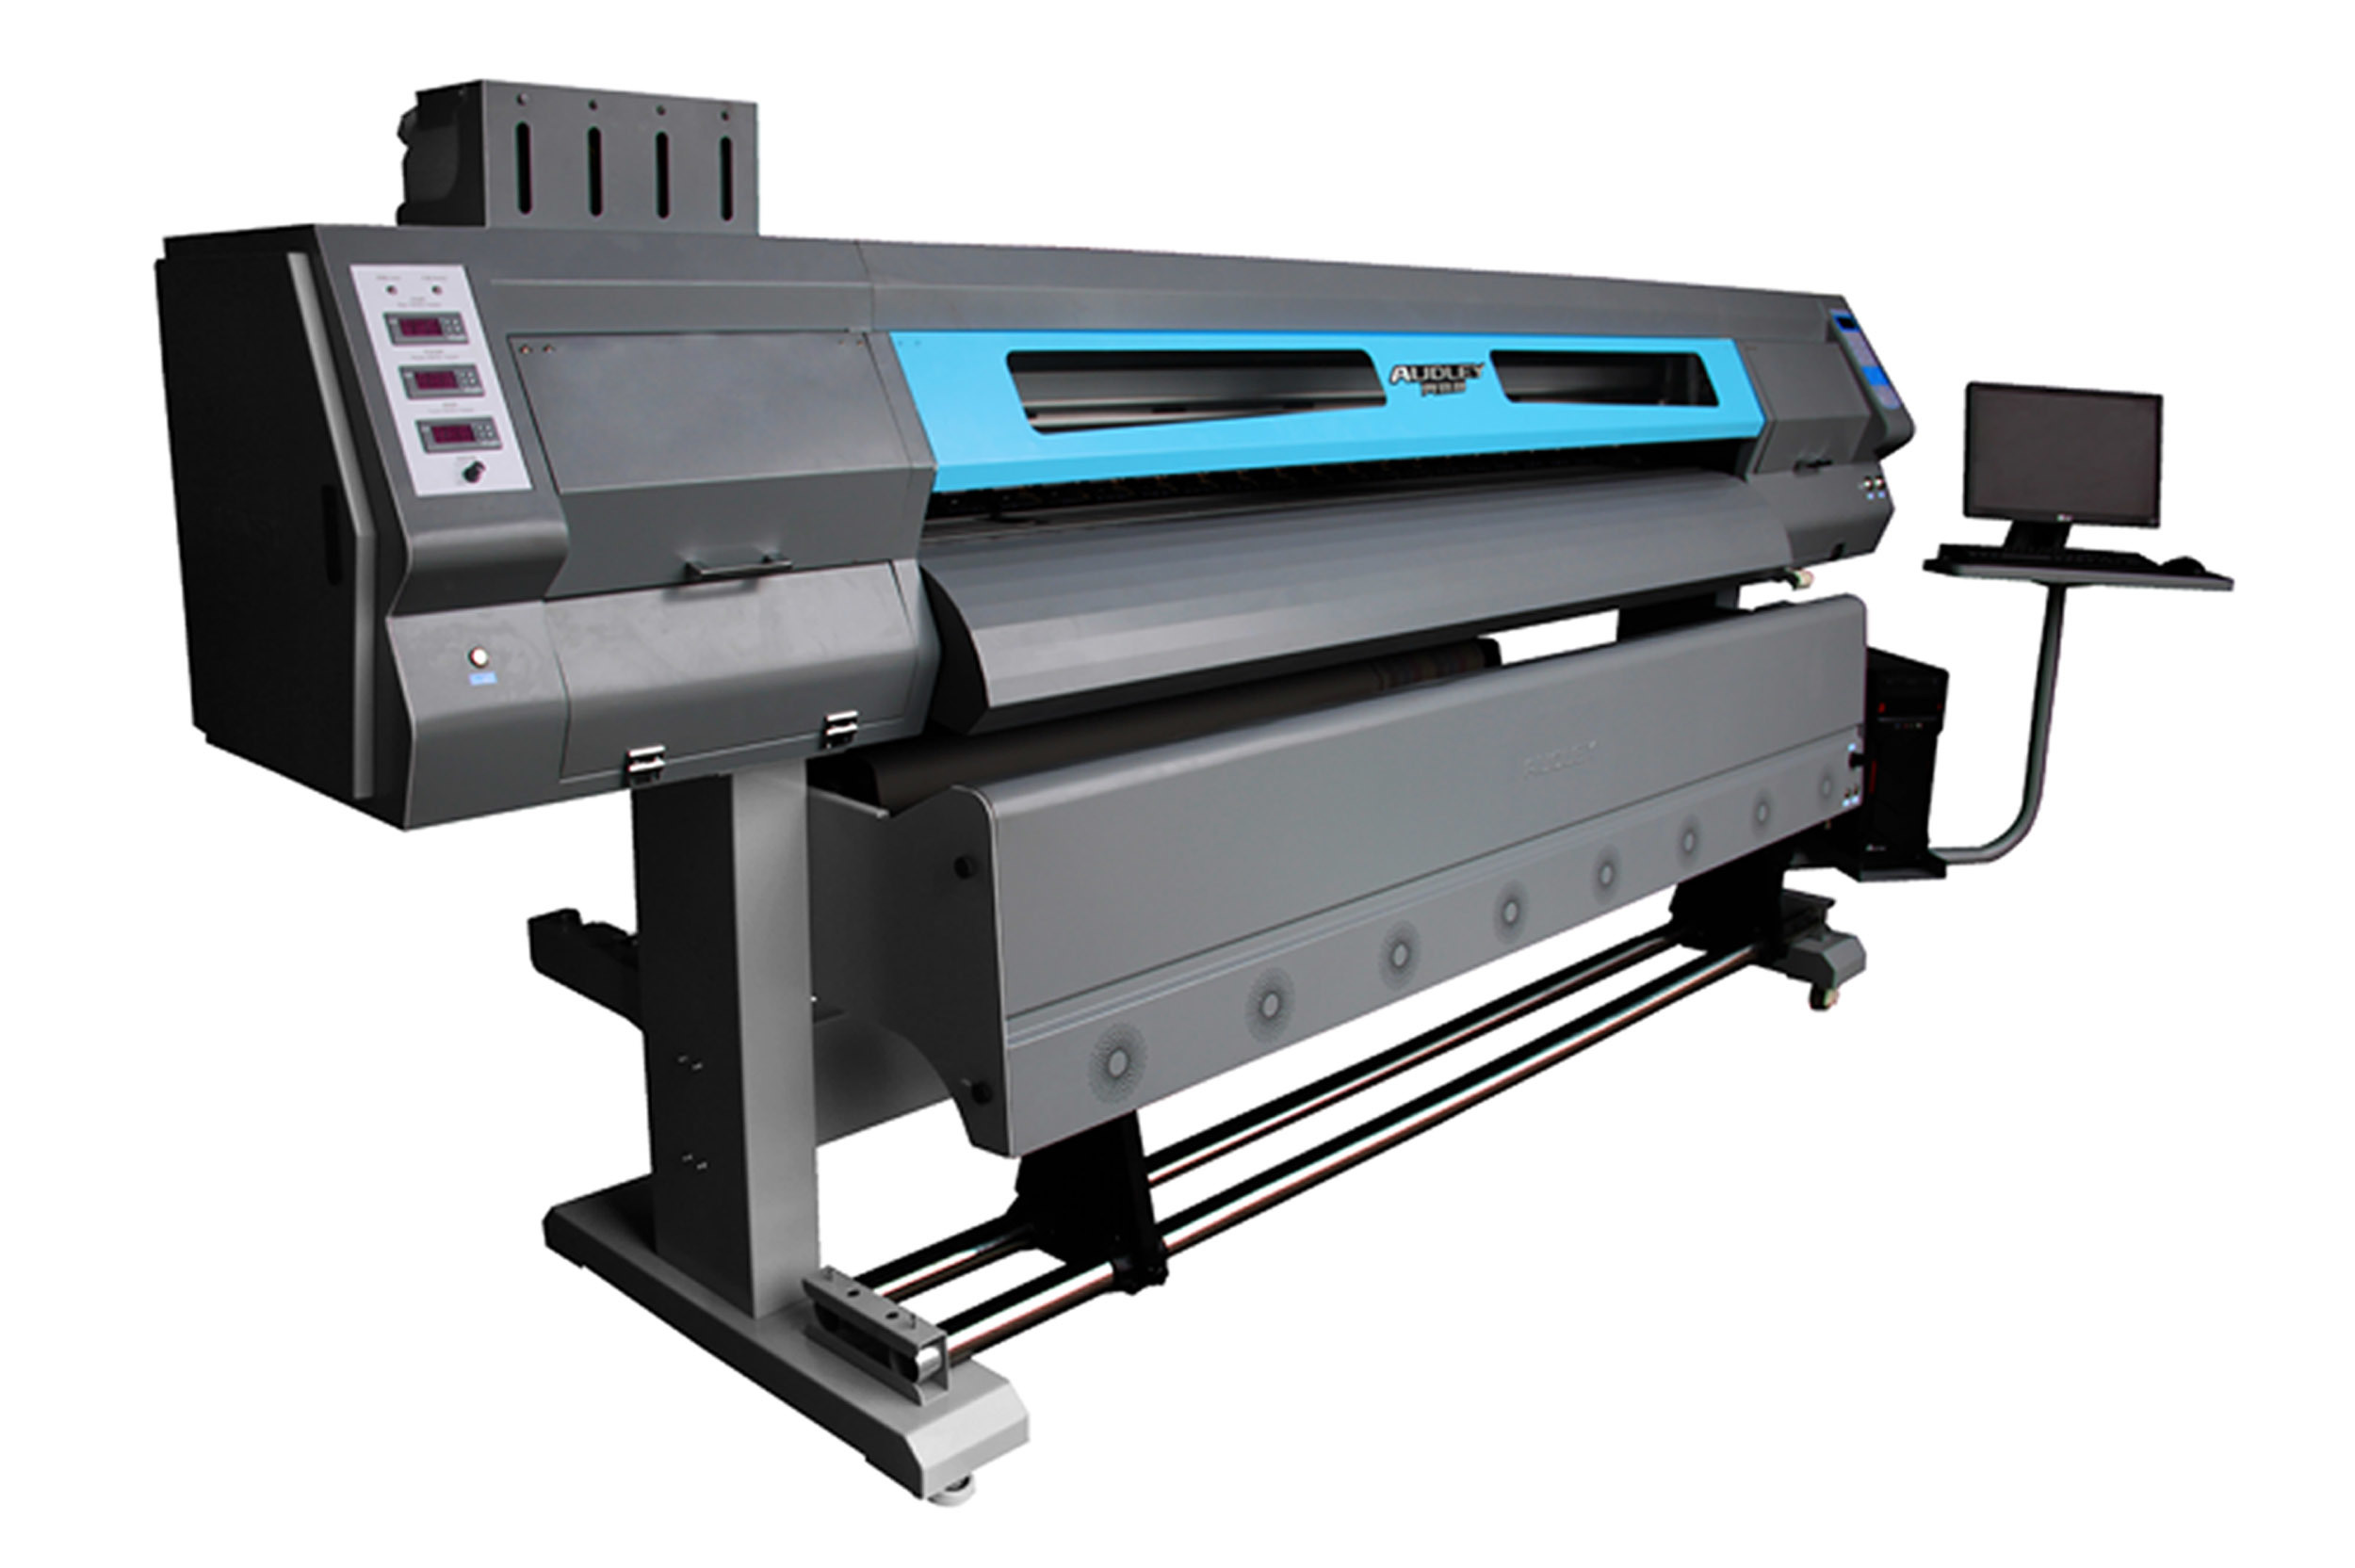 Inkjet Heads Market 2019 Emerging Players, Growth Analysis